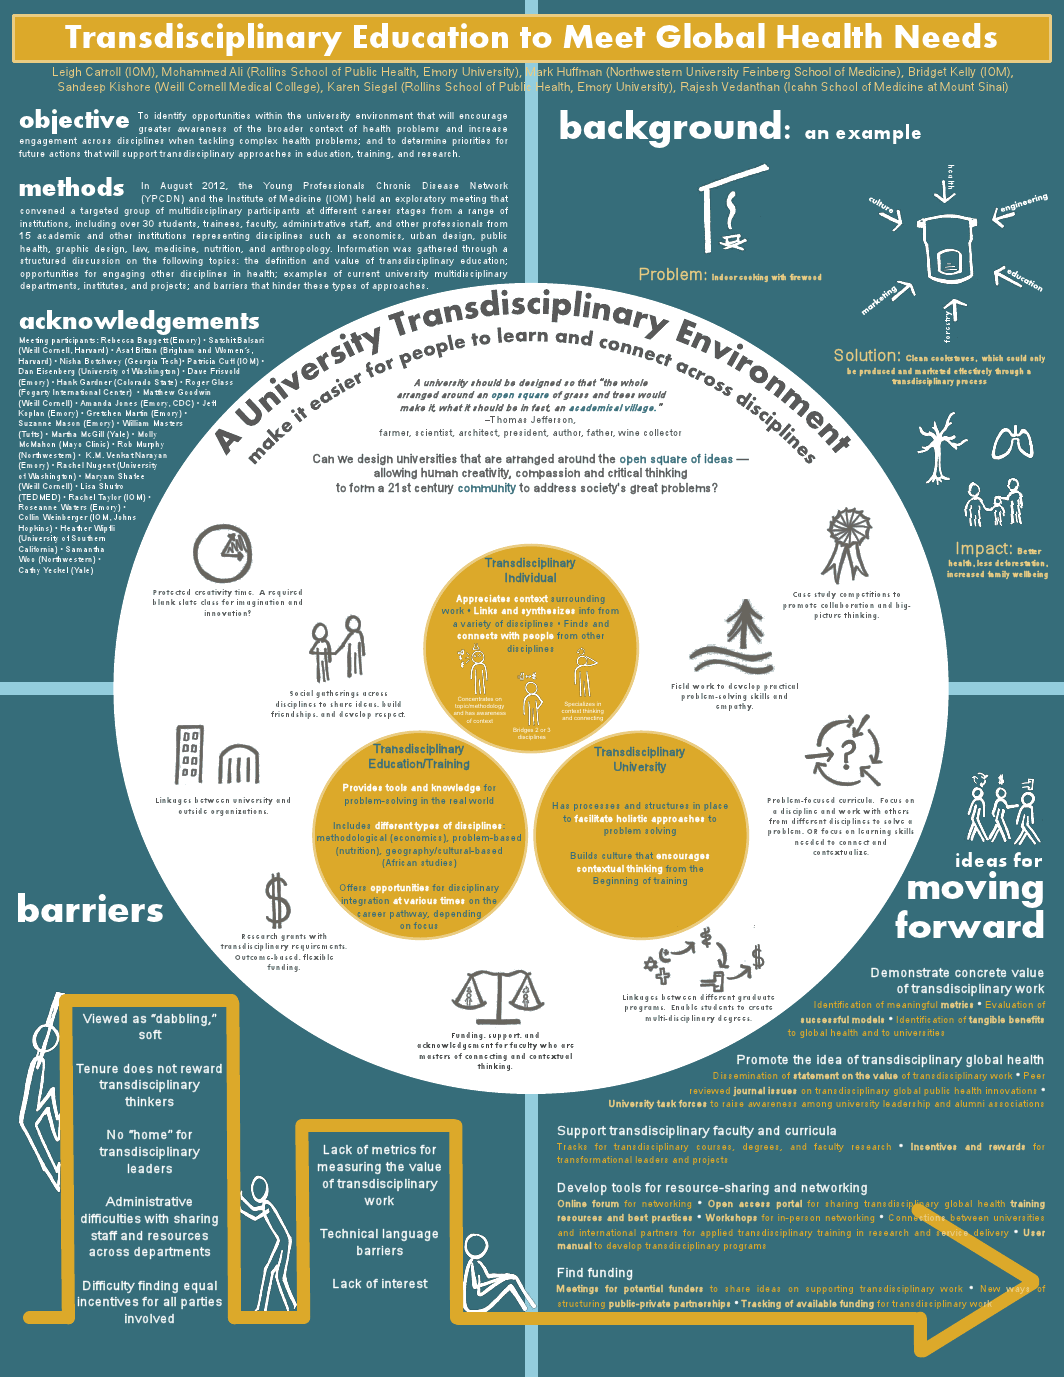 Innovative Poster Highlights Work Towards Trans-Disciplinary ...